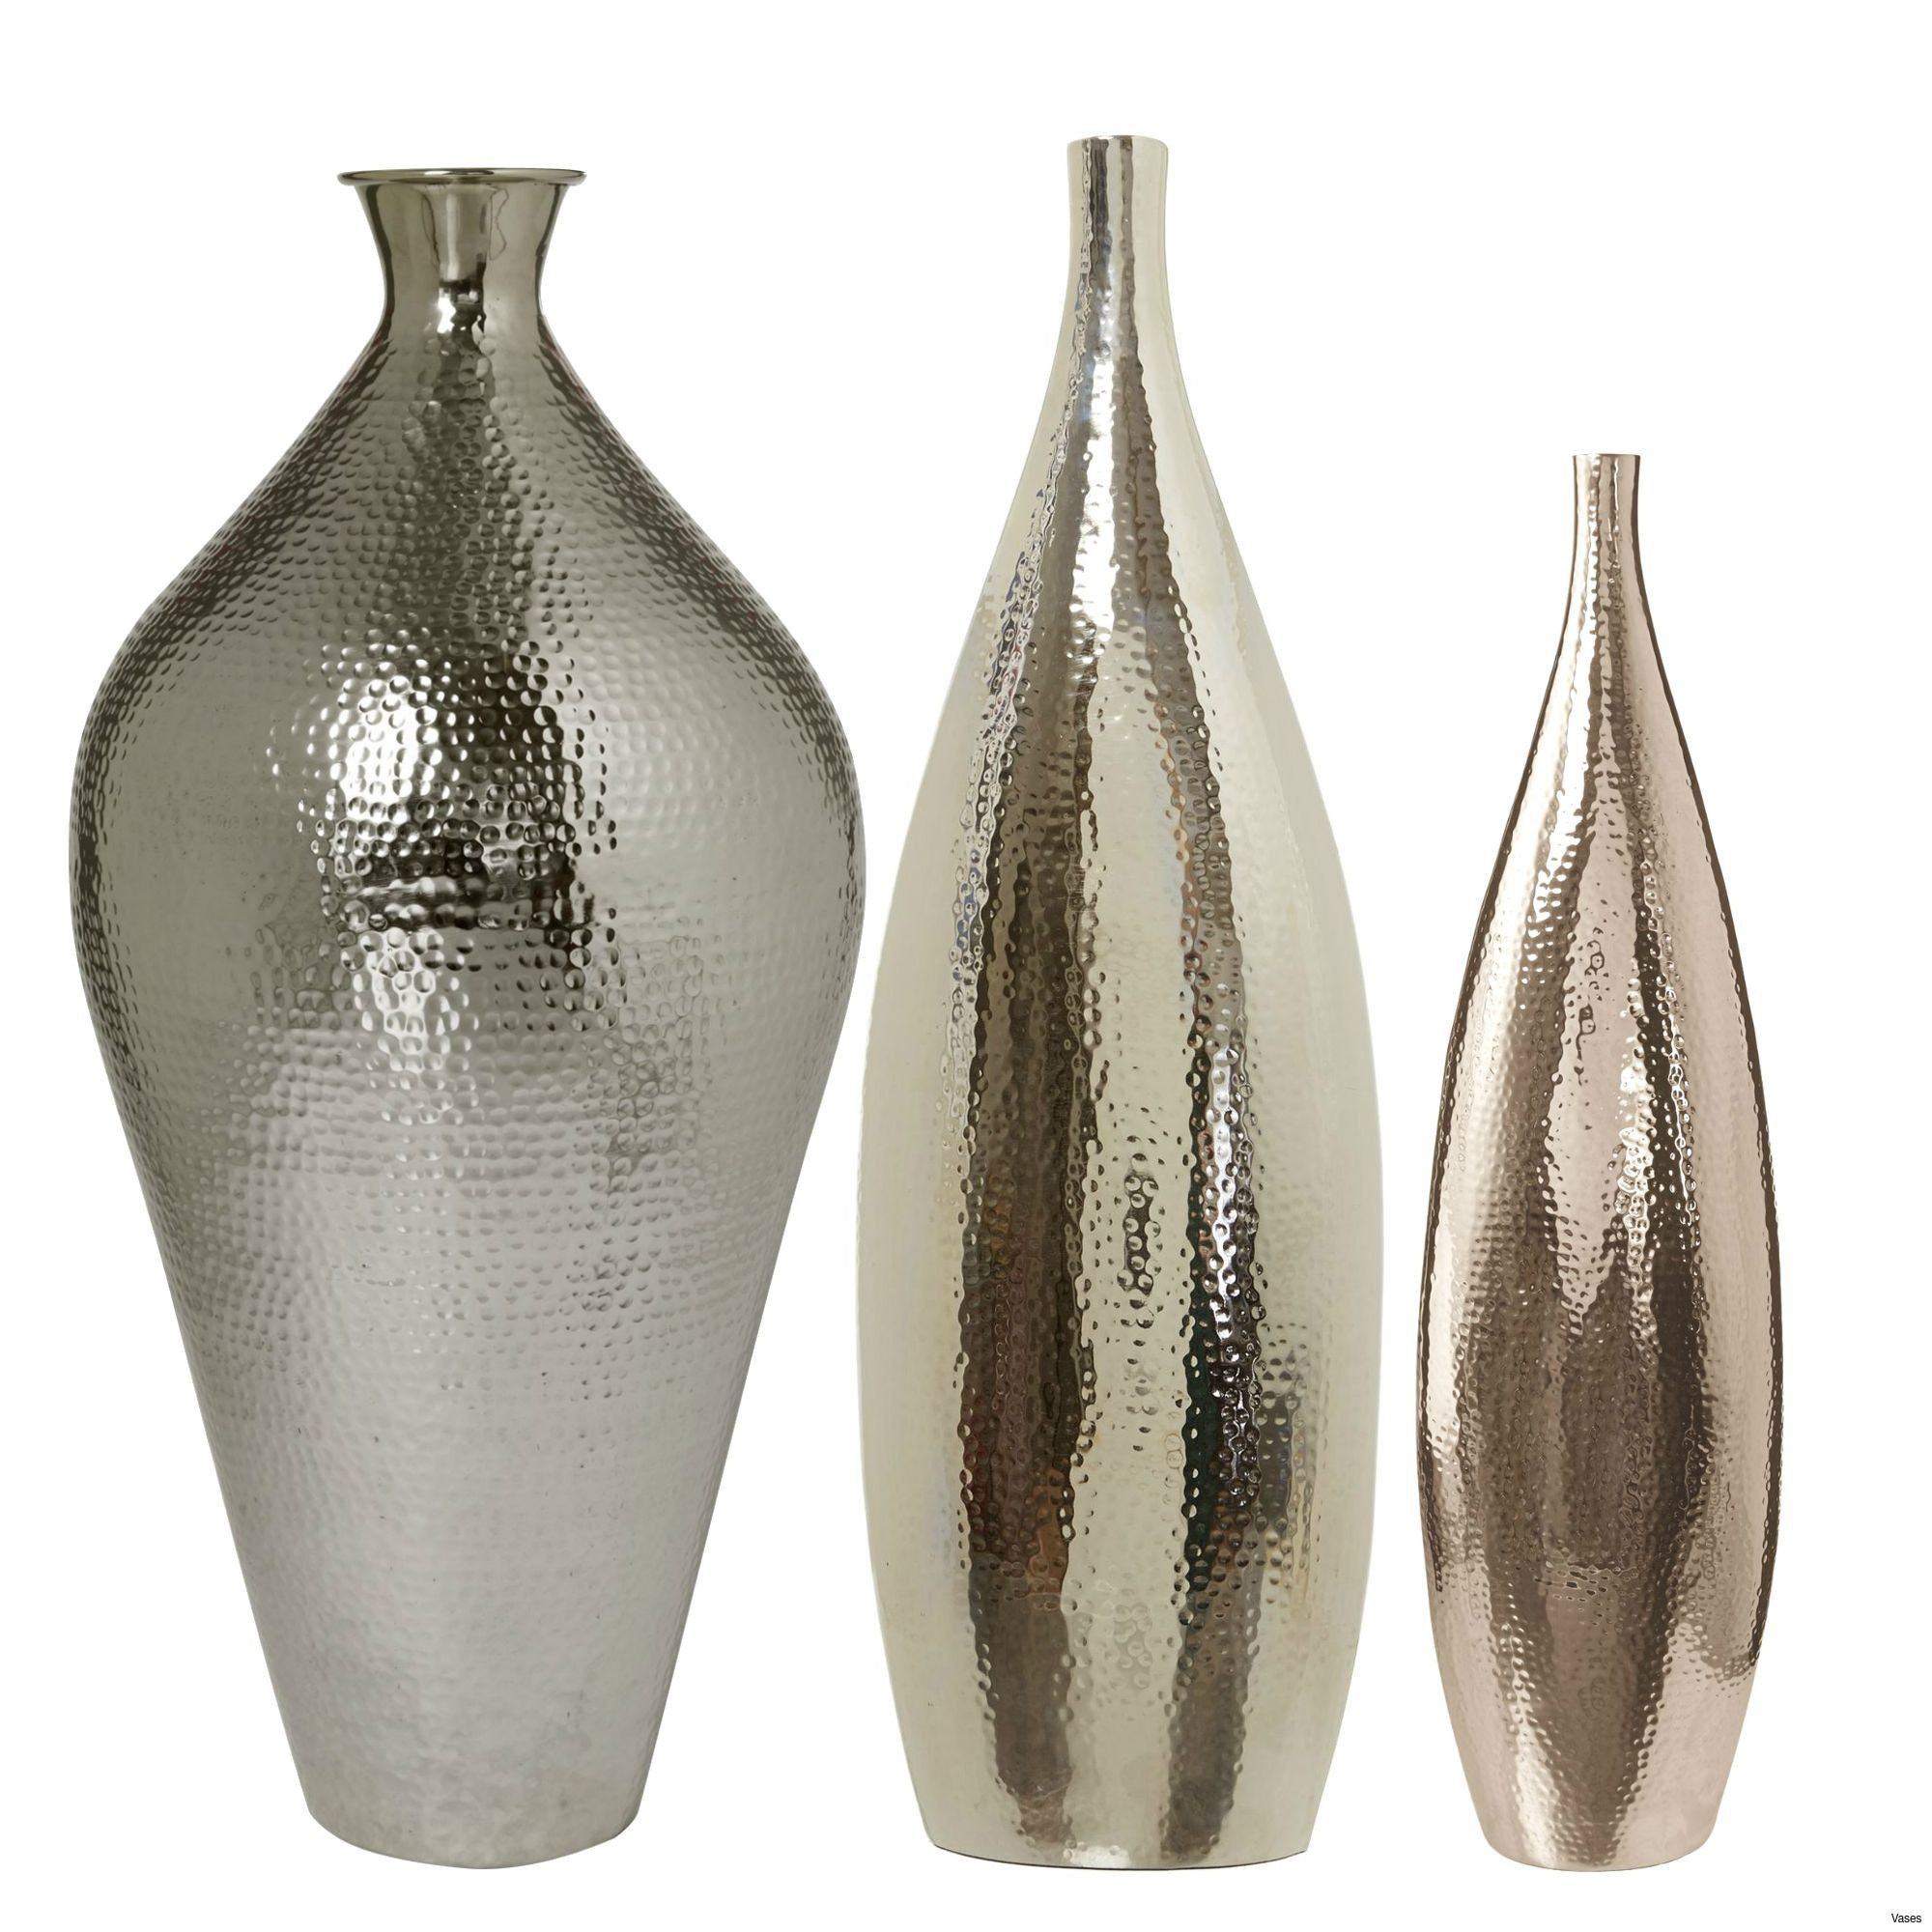 Tall Pedestal Vase Of Tall Vase Fillers Inspirational Metal Vases Vase and Cellar Image Pertaining to Tall Vase Fillers Inspirational Metal Vases Vase and Cellar Image Avorcor